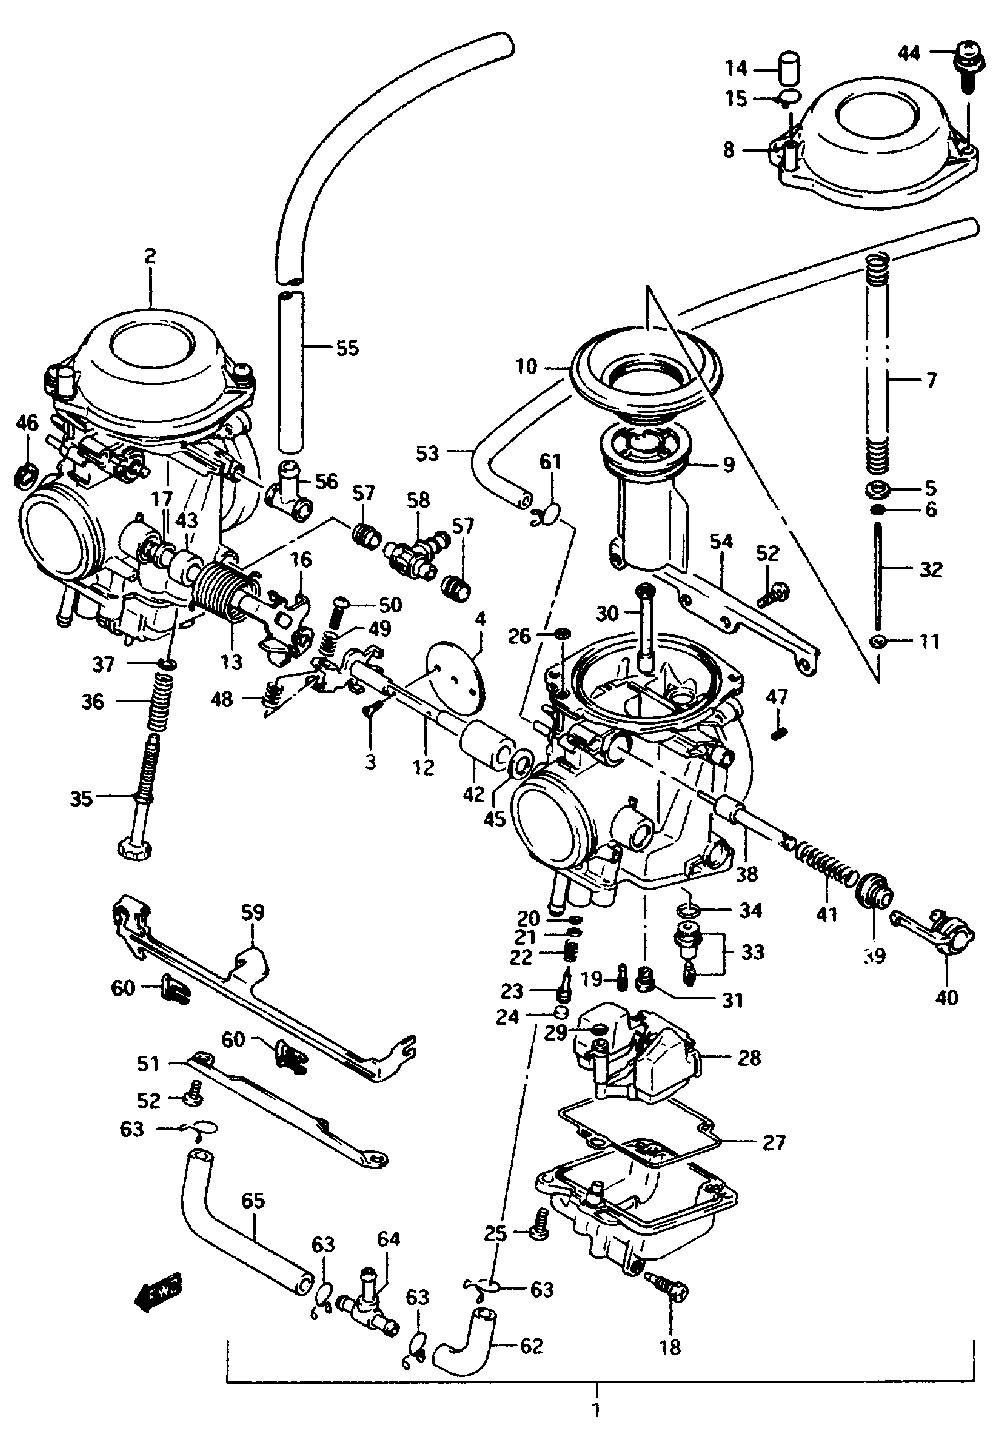 Miscellaneous Carb Questions Faq Dr350se Wiring Diagram Gs500ecarburetorklmnprst 1989 1996